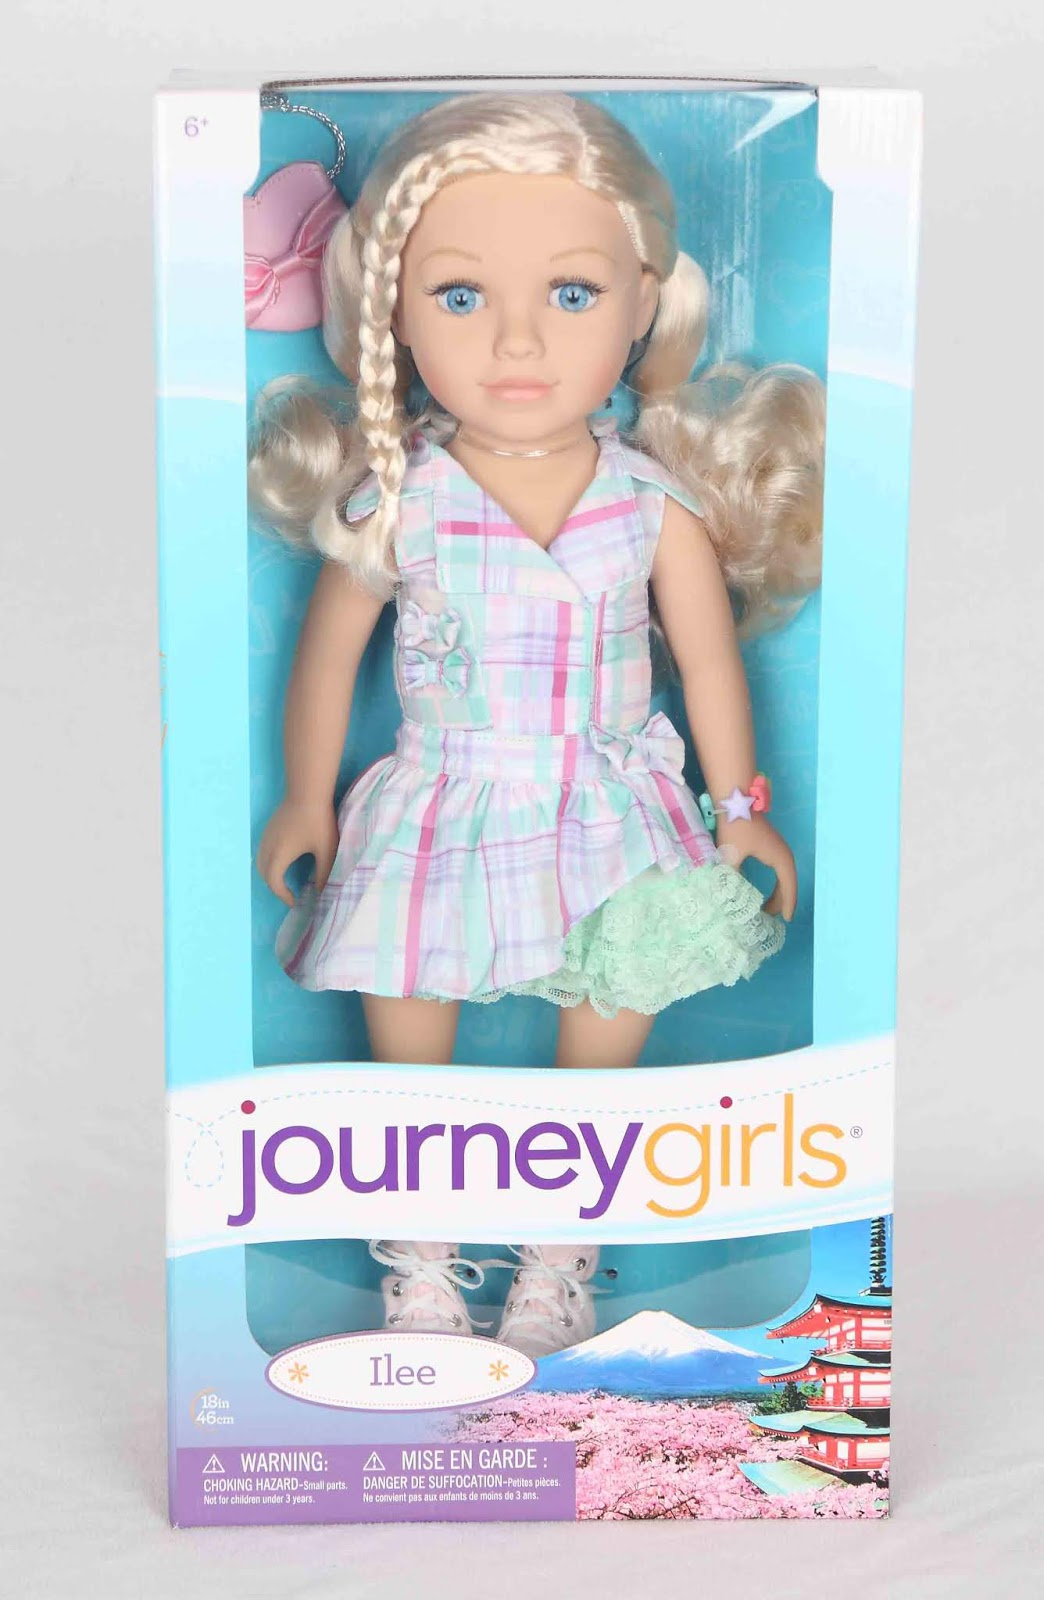 bf02757dbb3 Until recently there wasn't much hope that Journey Girls would be released  in the U.S. at all. Then they showed up on the Amazon website for Prime day.